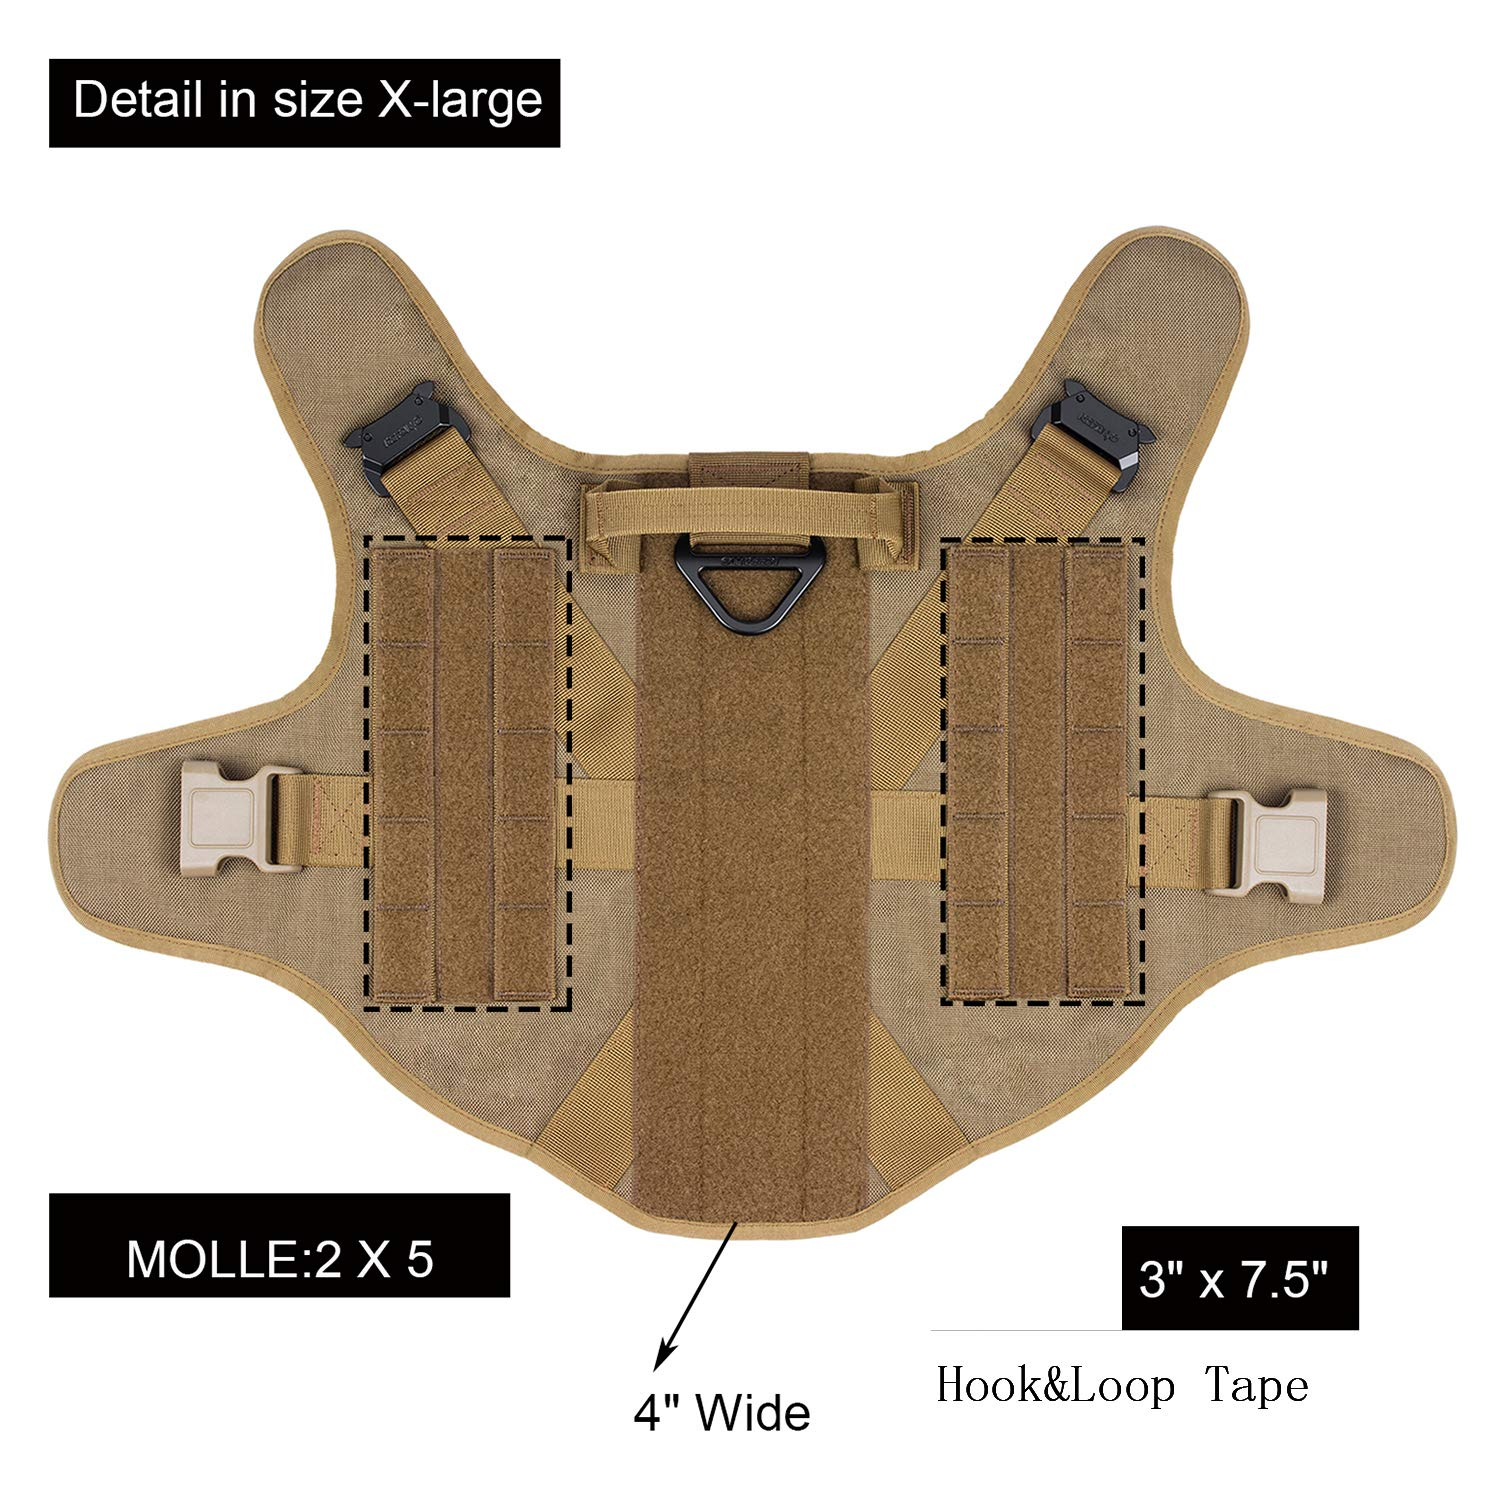 ICEFANG Dog Modular Harness,Military K9 Working Dog Tactical Molle Vest,No Pull Front Clip,Unbreakable Metal Quick Release Buckle Snap-Proof (XL (32''-39'' Girth), CB-Molle Half Body) by ICEFANG (Image #4)